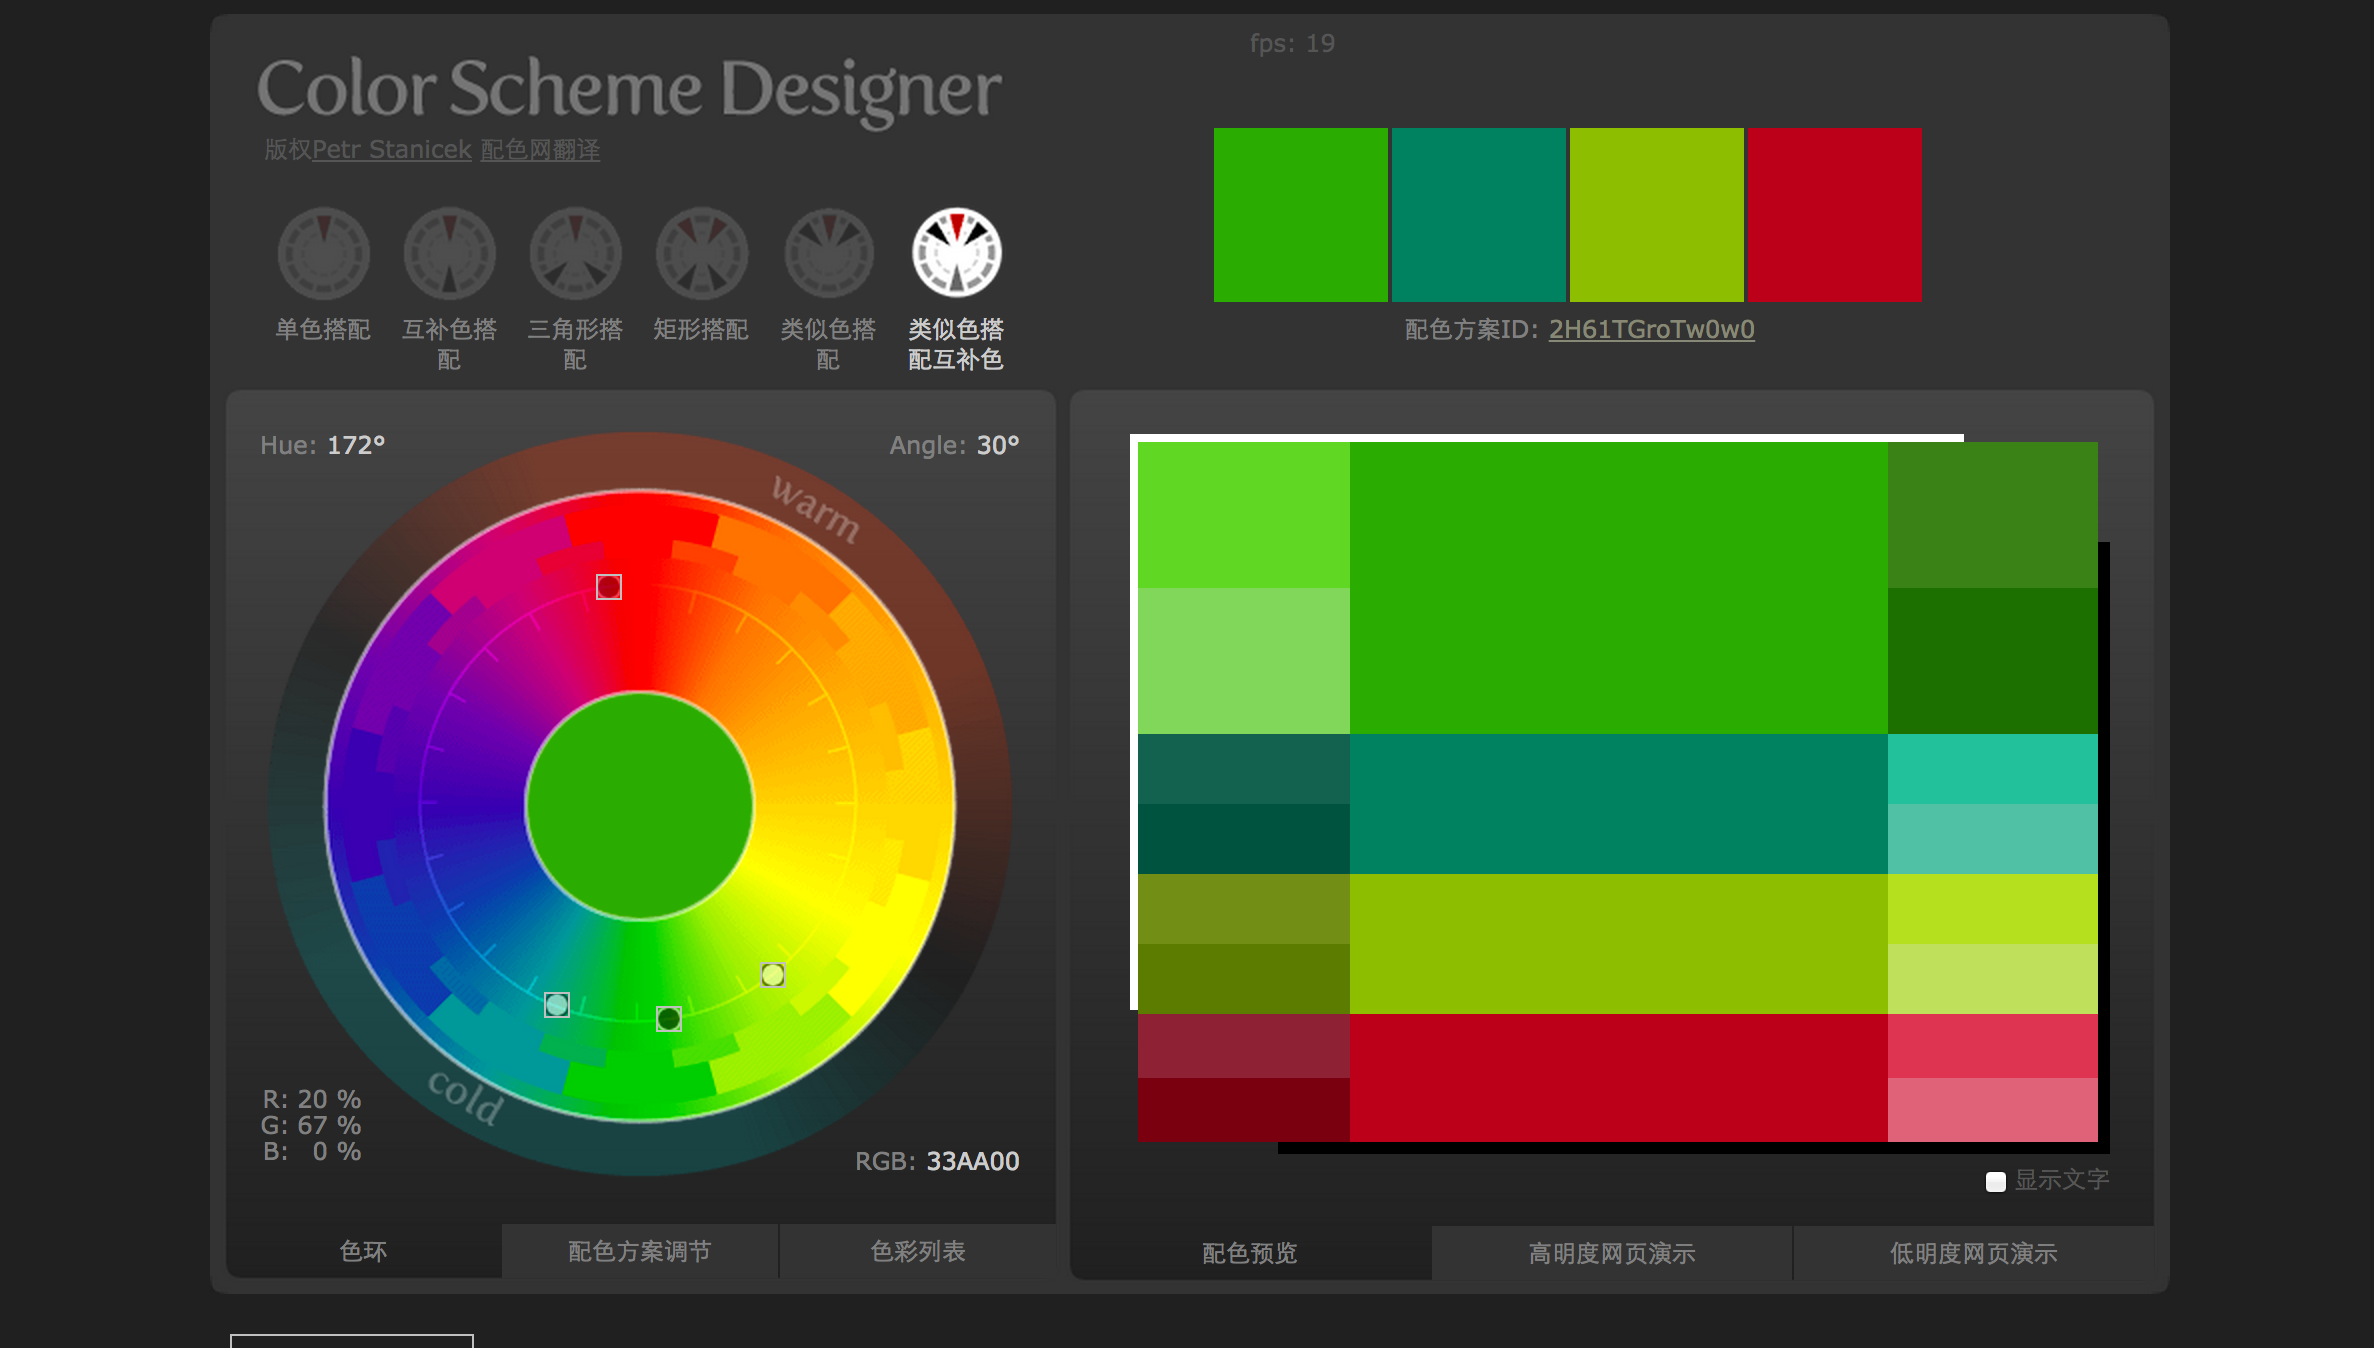 Color Scheme Designer界面